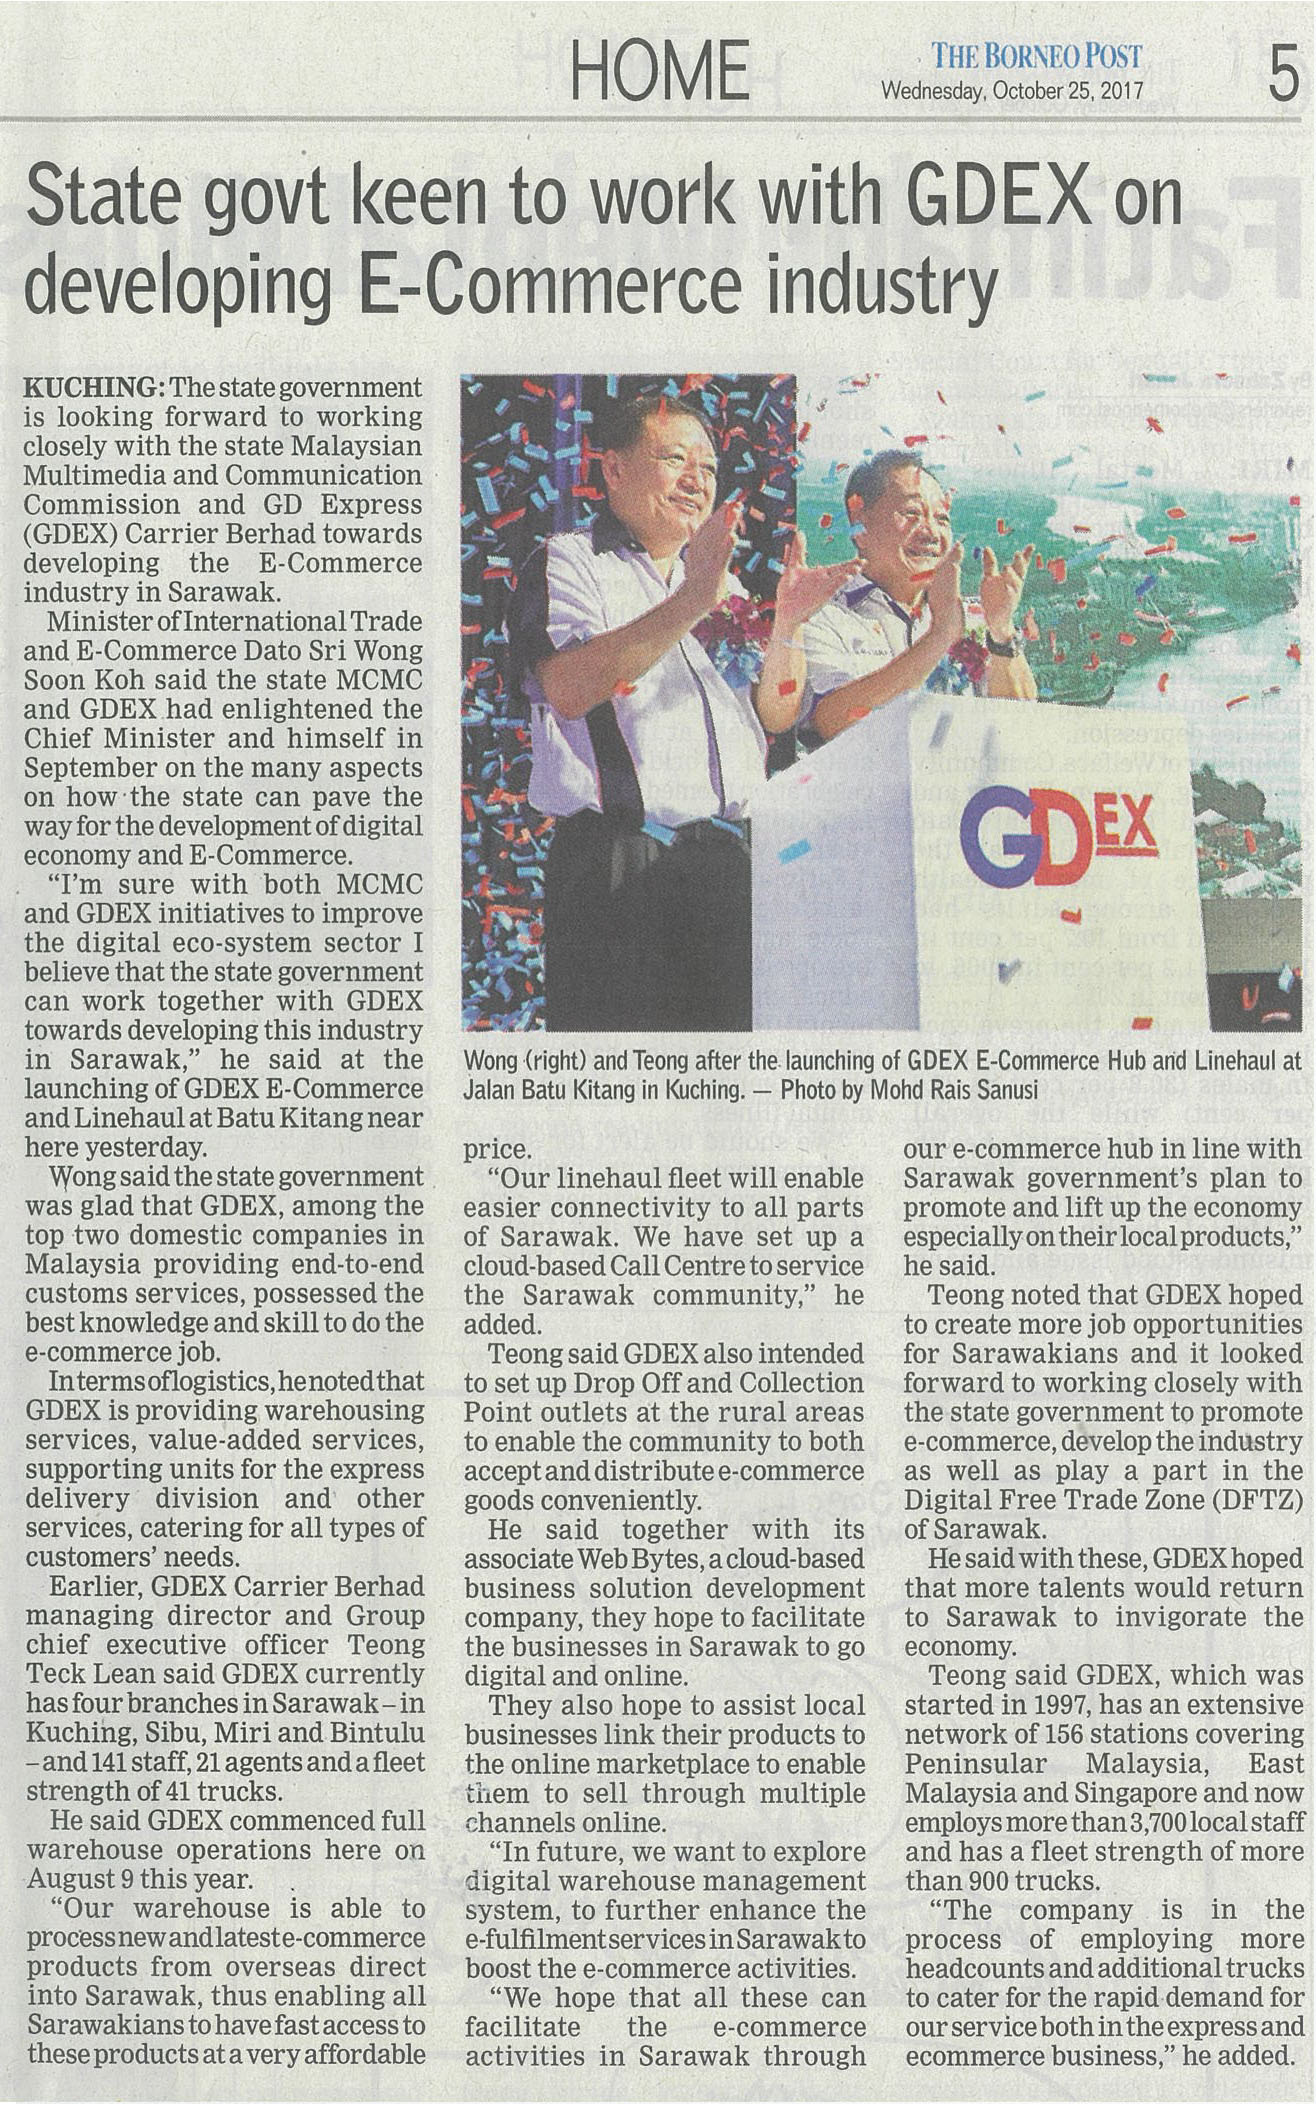 The Borneo Post - State govt keen to work with GDEX on developing E-Commerce industry